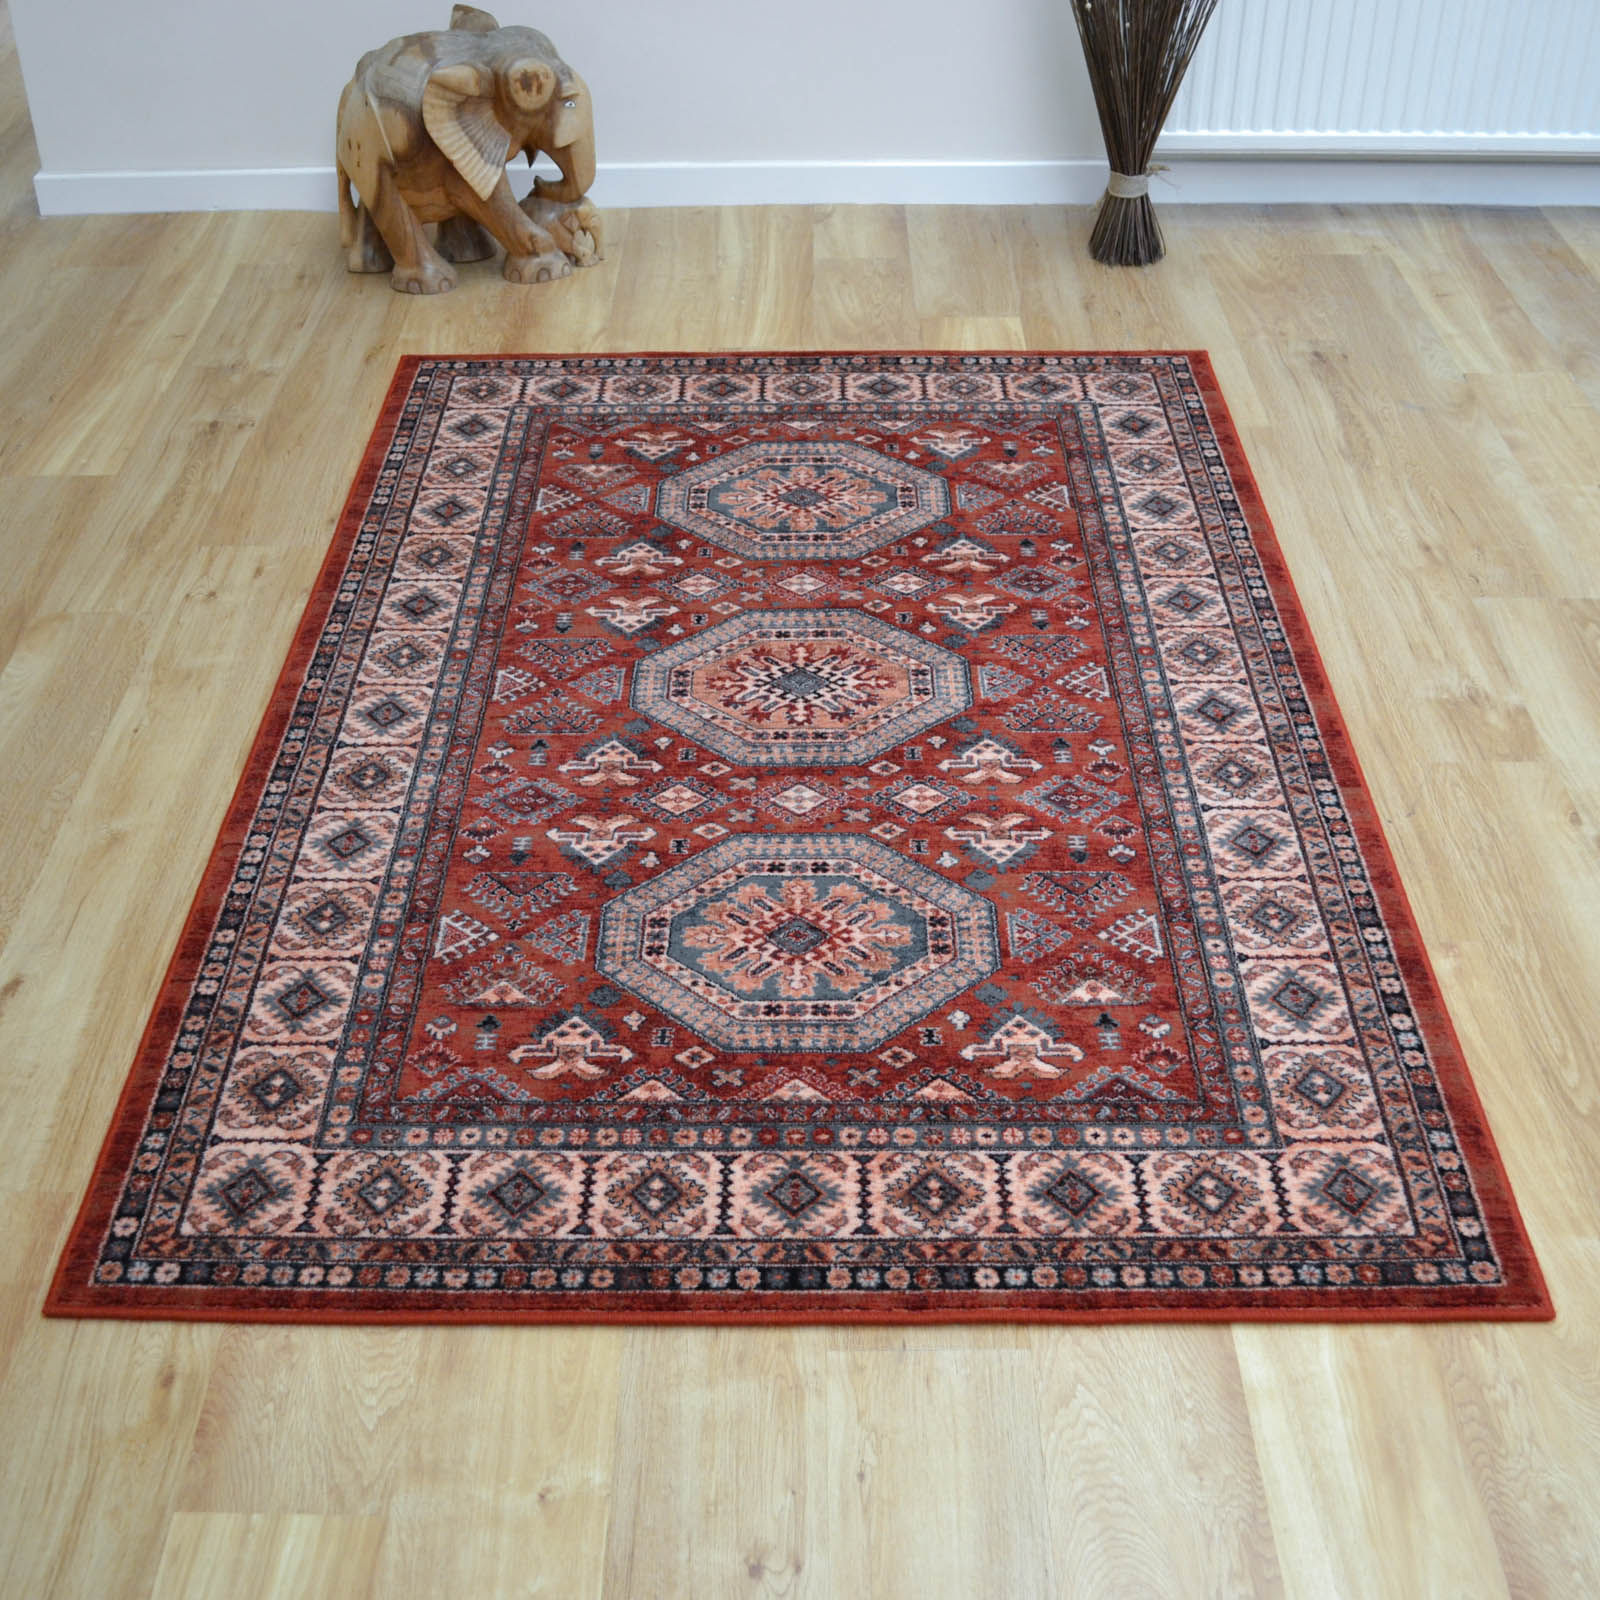 Royal Kashqai Rugs 4317 300 in Brick